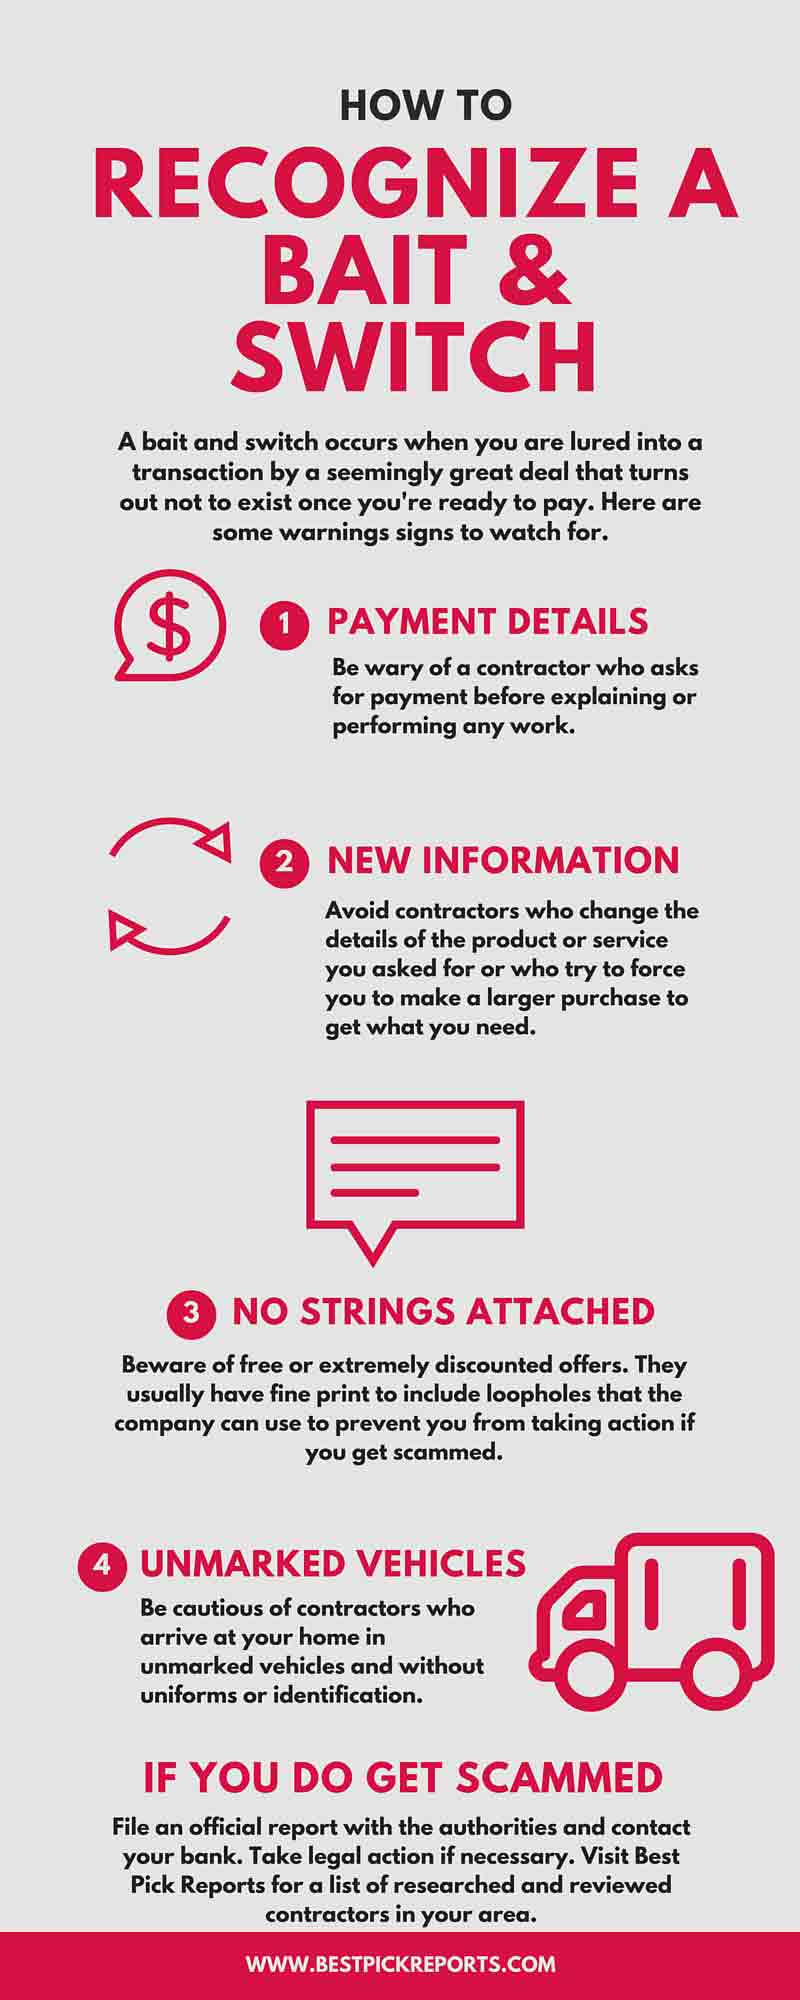 How to Recognize a Bait and Switch infographic